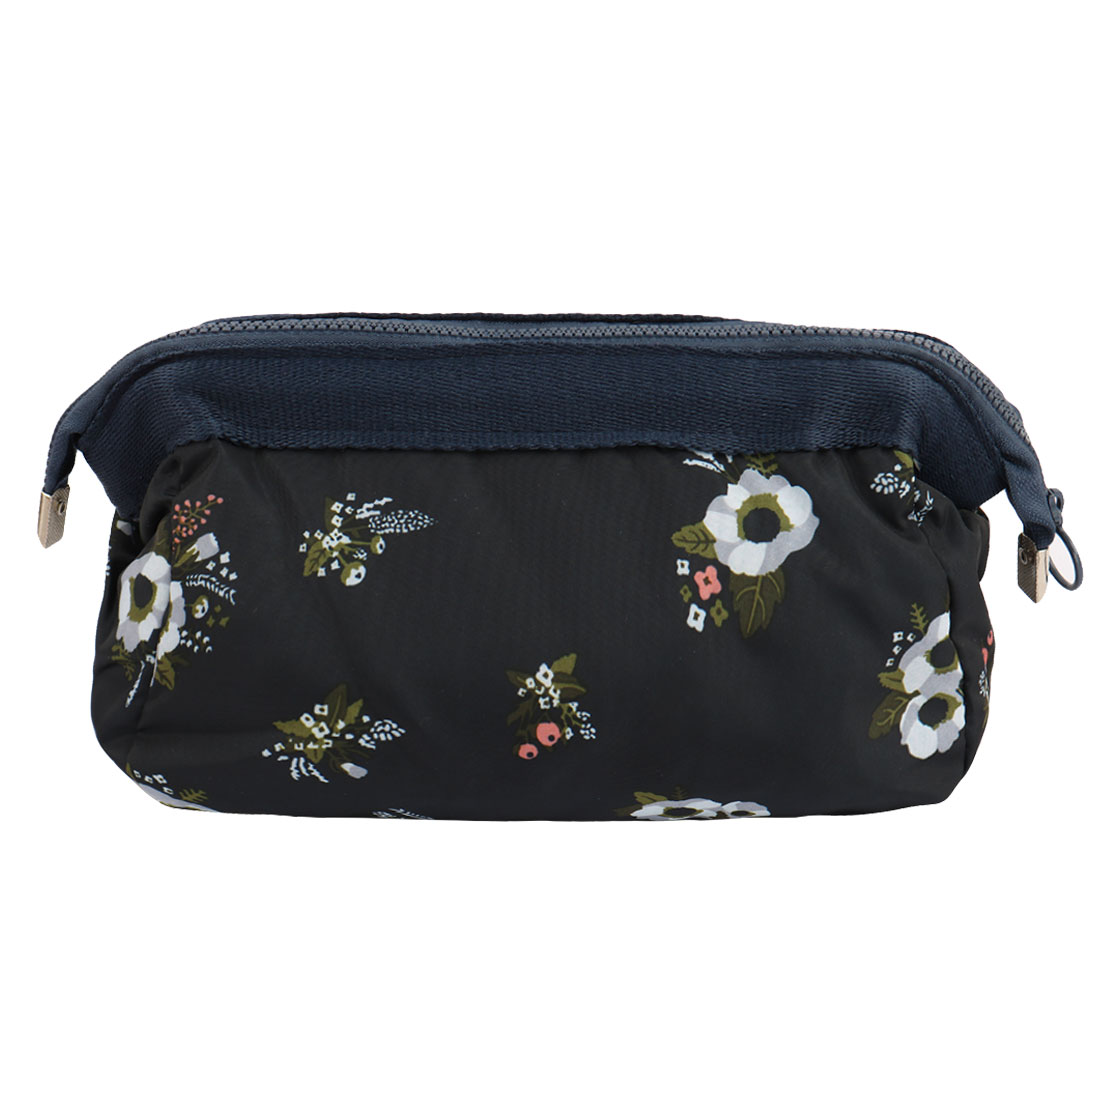 Travel Cosmetic Makeup Bag Wash Bag Pouch Toiletry Purse Beauty Case Navy Blue